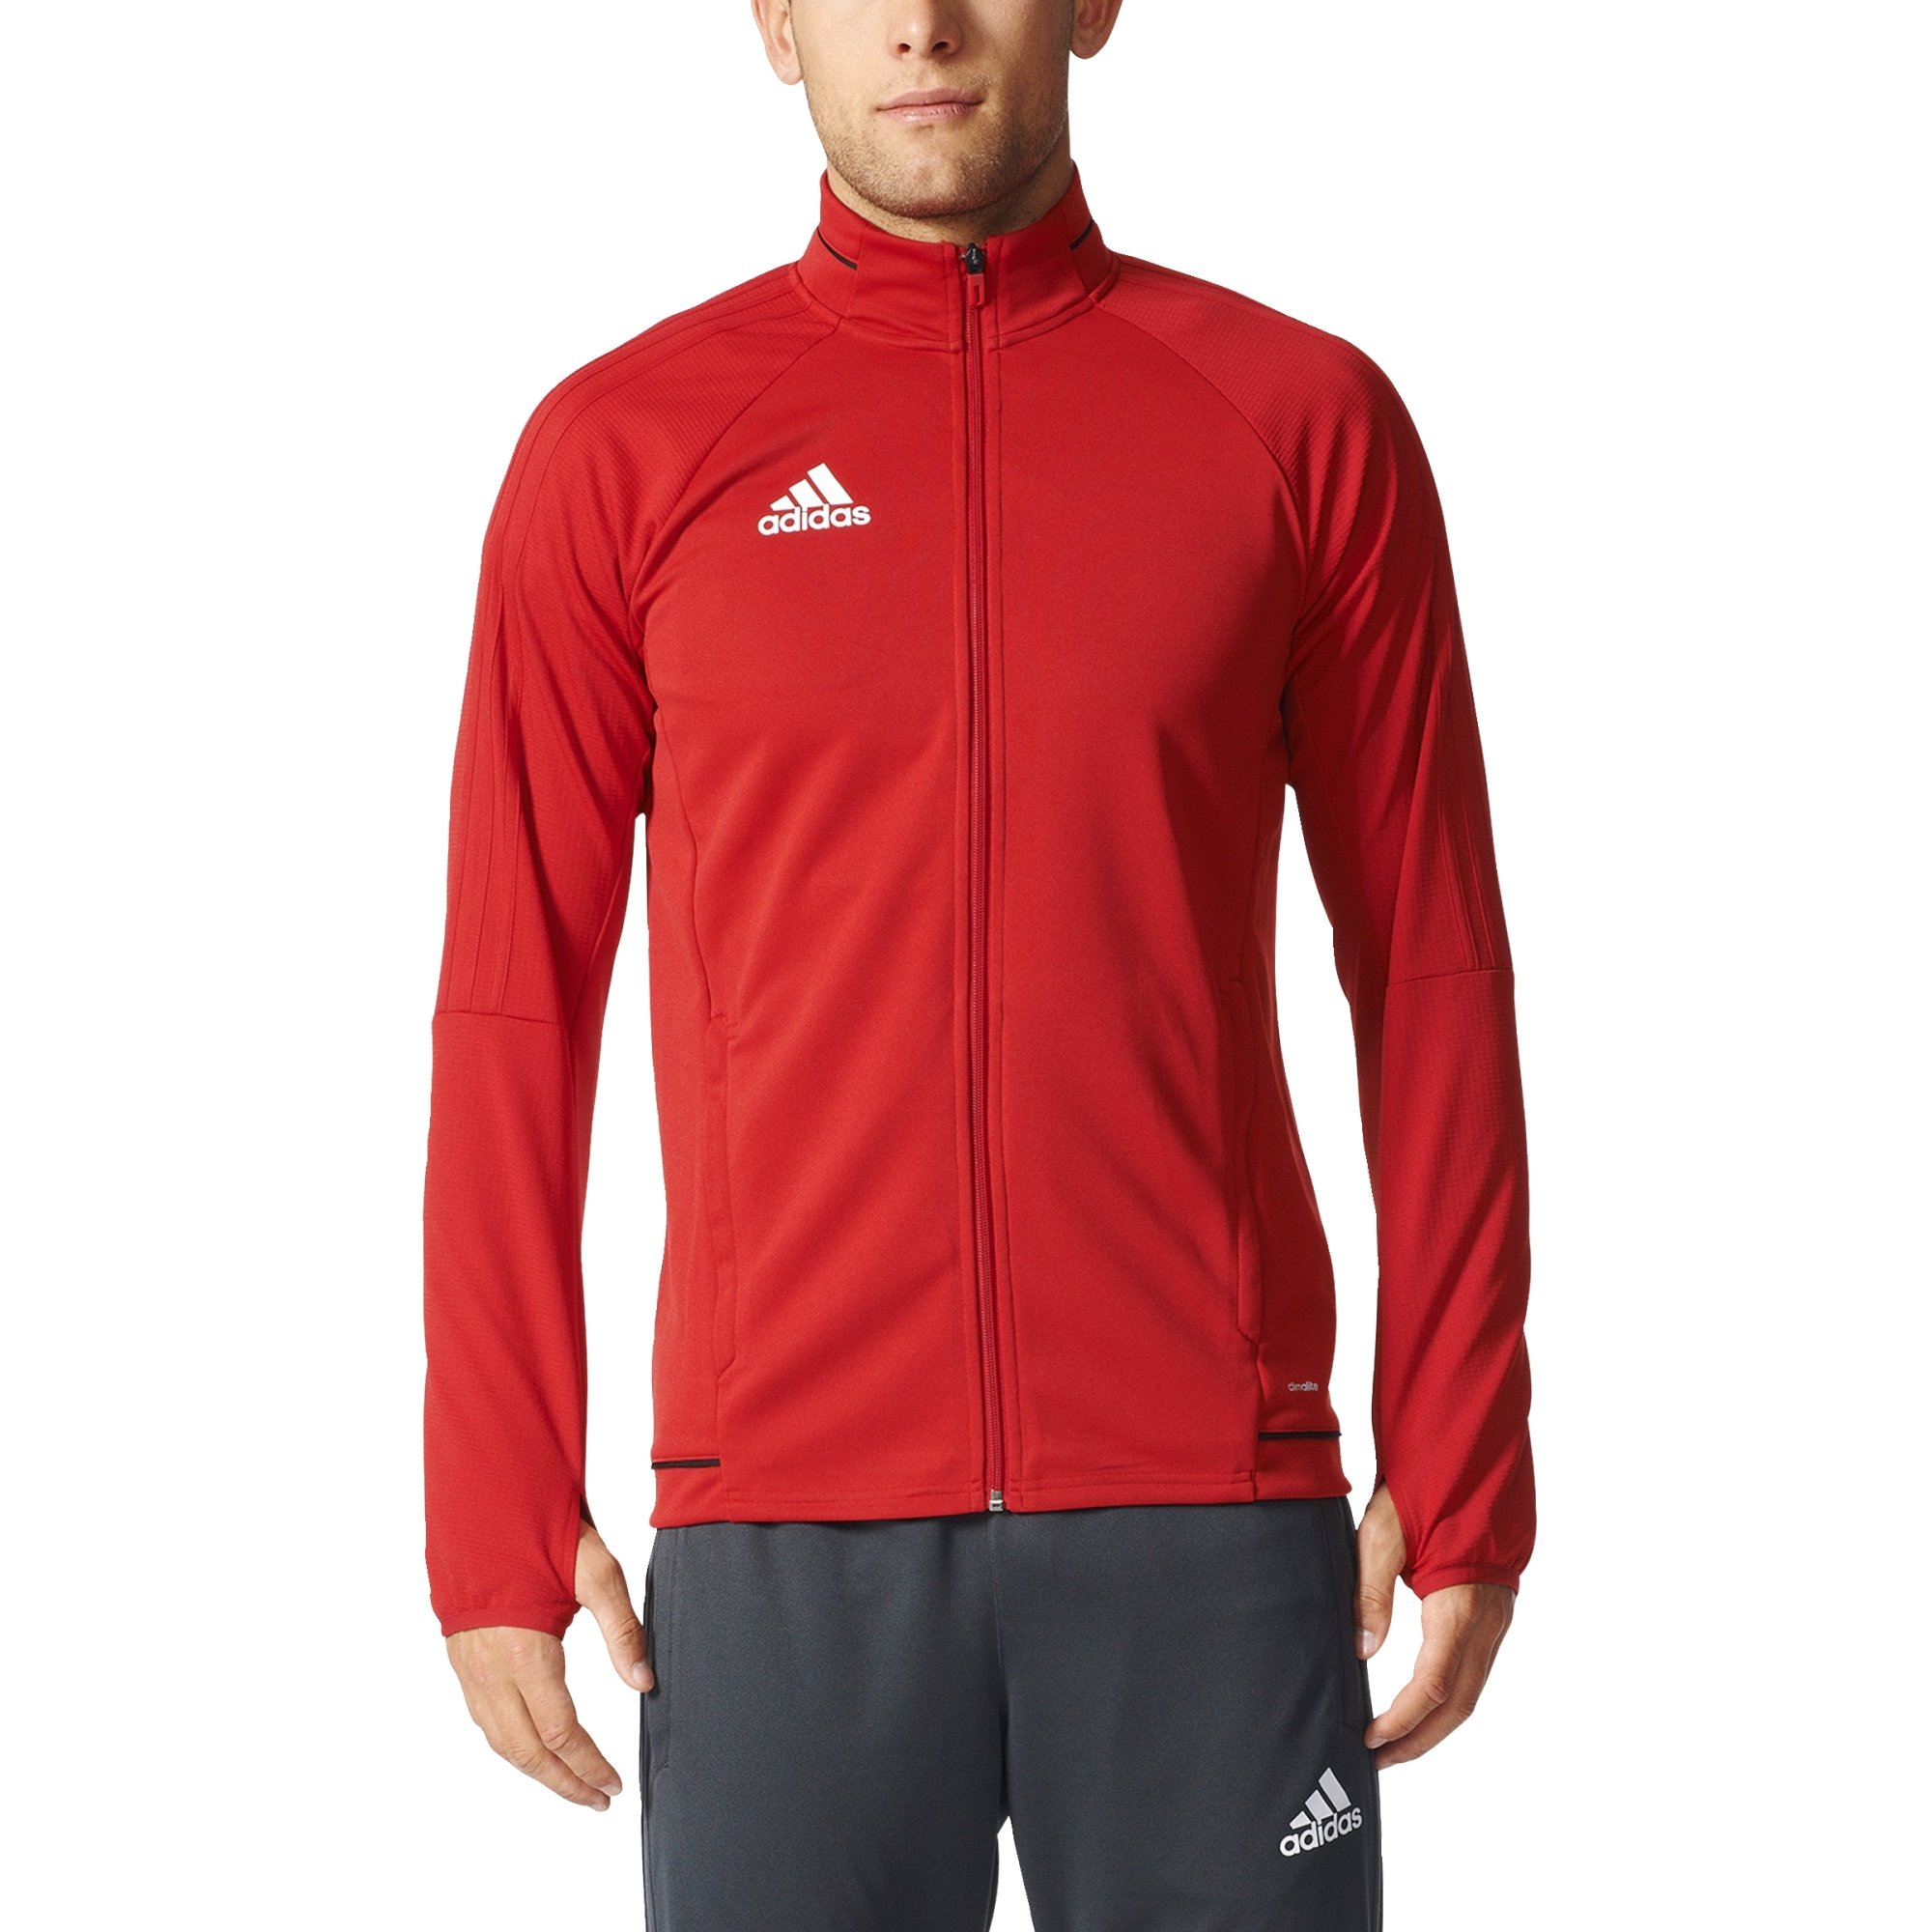 Adidas Tiro 17 Mens Soccer Training Jacket M Power Red-Black-White